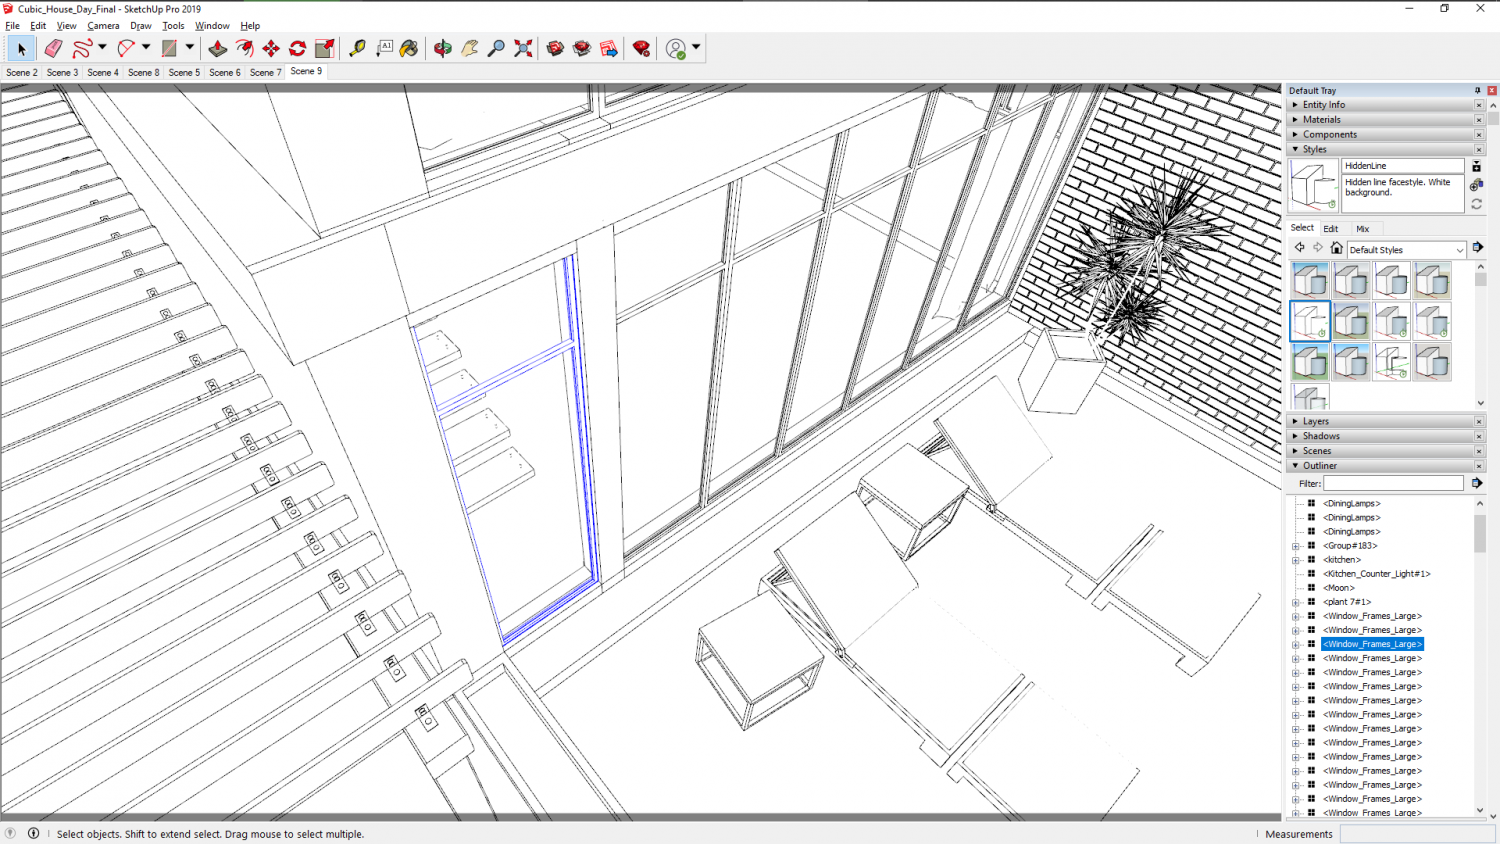 The Outliner in SketchUp